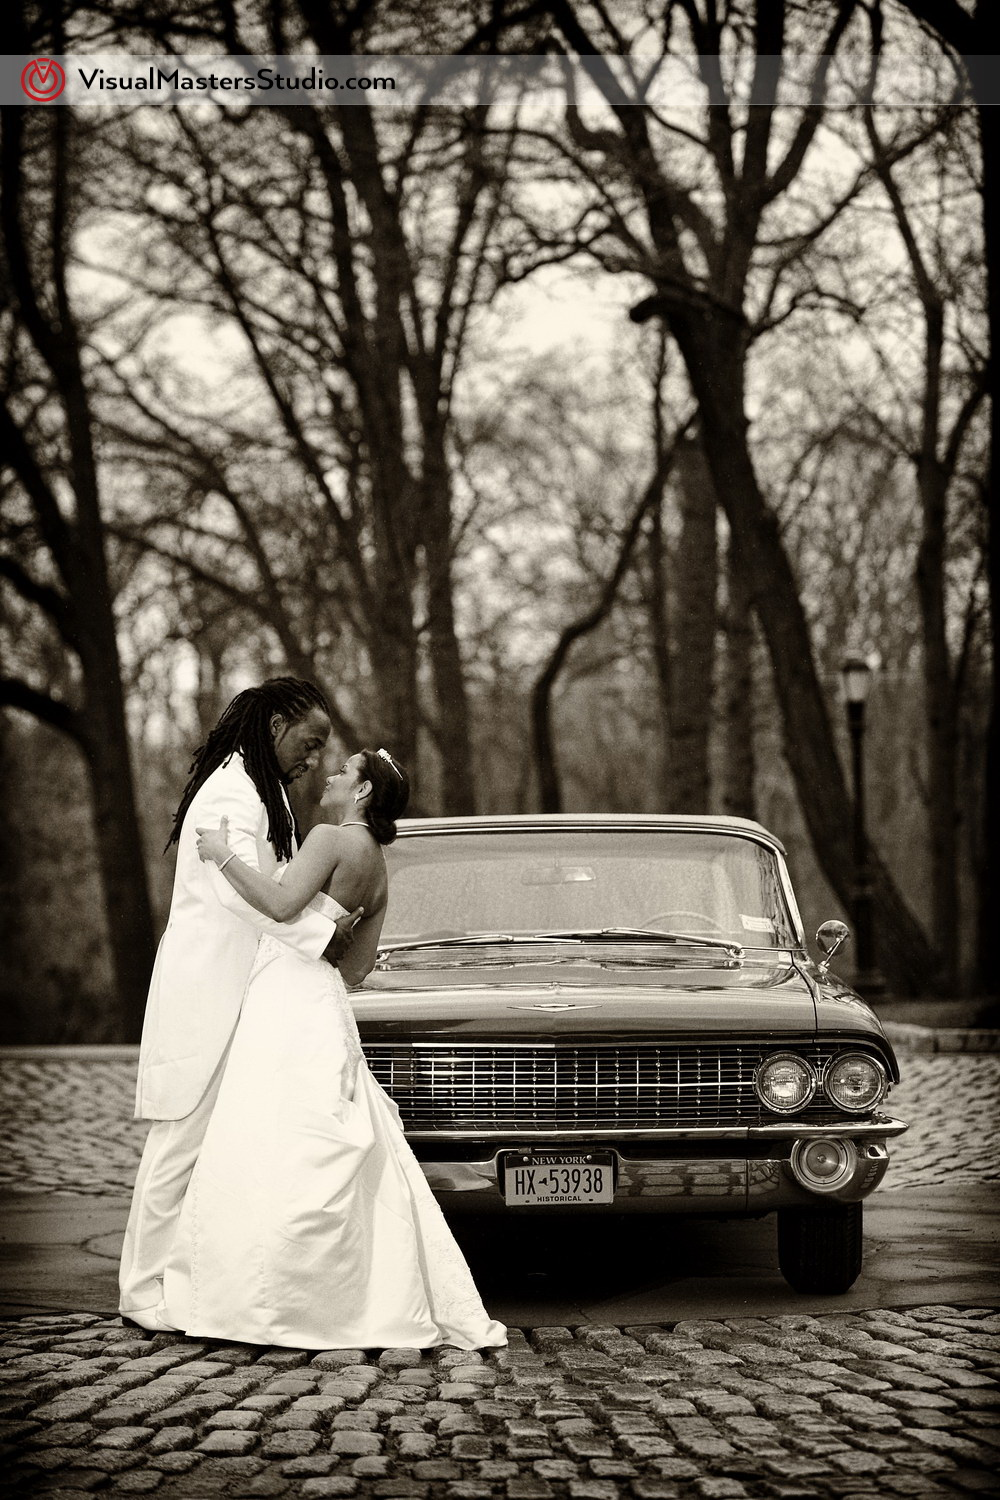 Bride and Groom Posing Next to Impala by VisualMasters